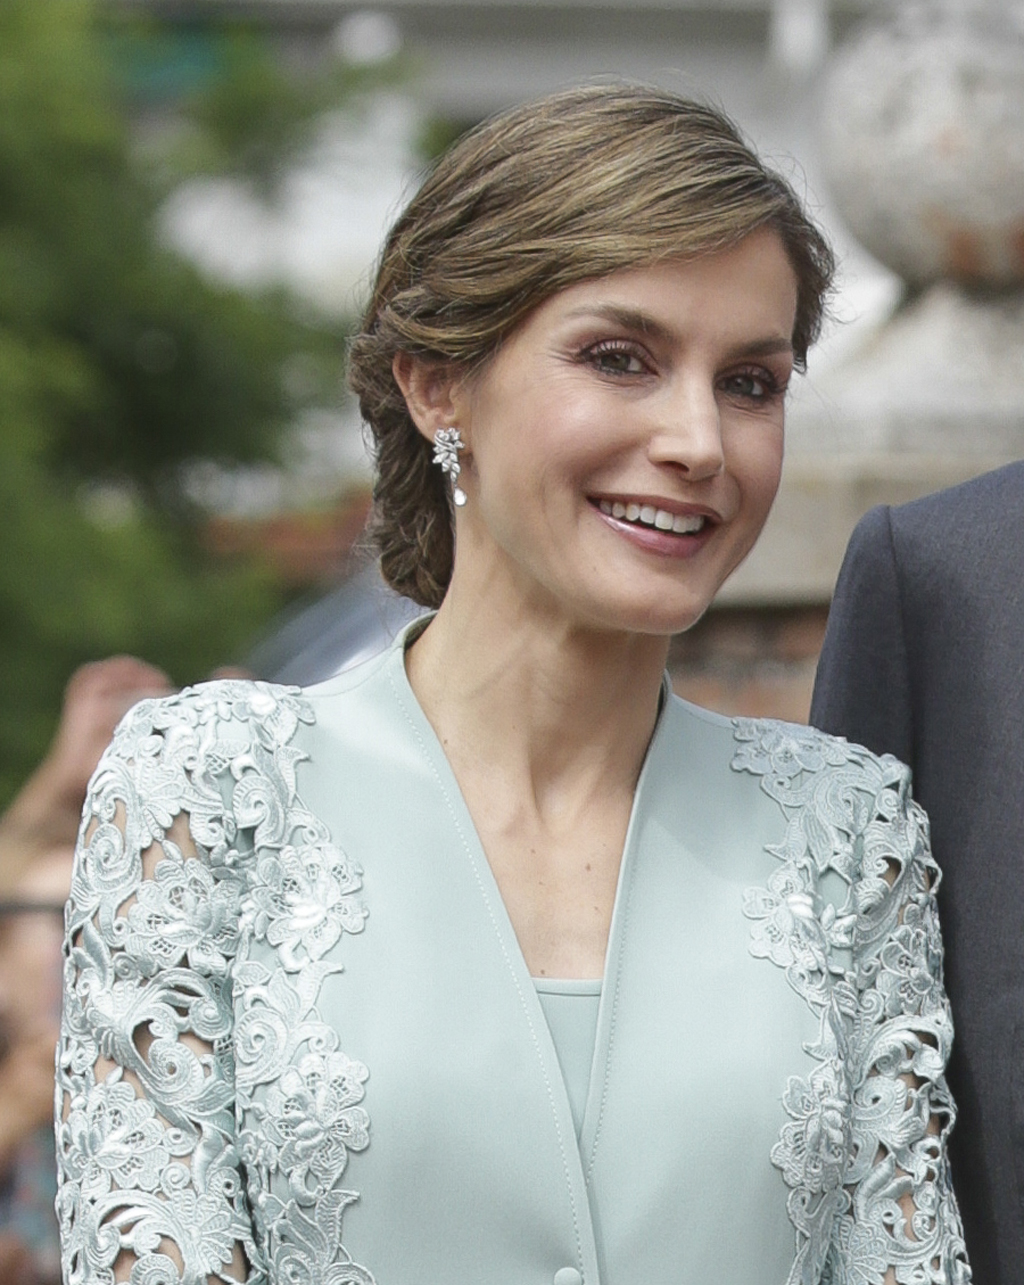 Spanish Queen Letizia Ortiz and emeritus King Juan Carlos I during Princess Sofia's first communion in Madrid, Spain, Wednesday, May 17, 2017.